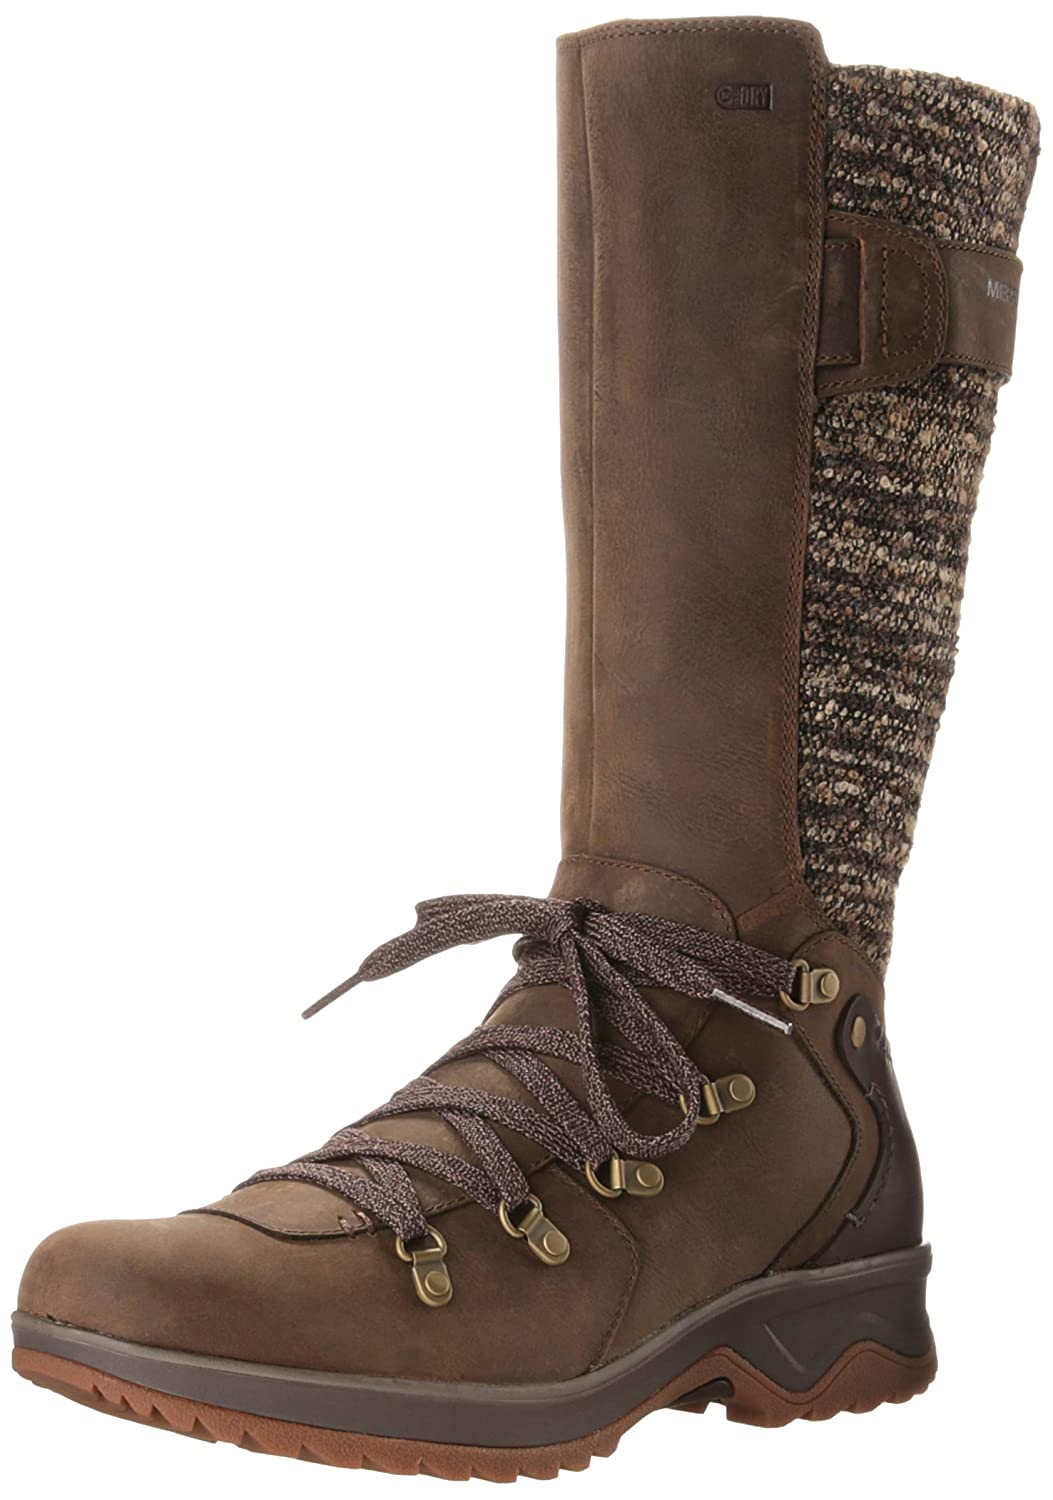 Merrell Women's Eventyr Peak Waterproof Boot B00RDRB1LK 5 B(M) US|Dark Earth